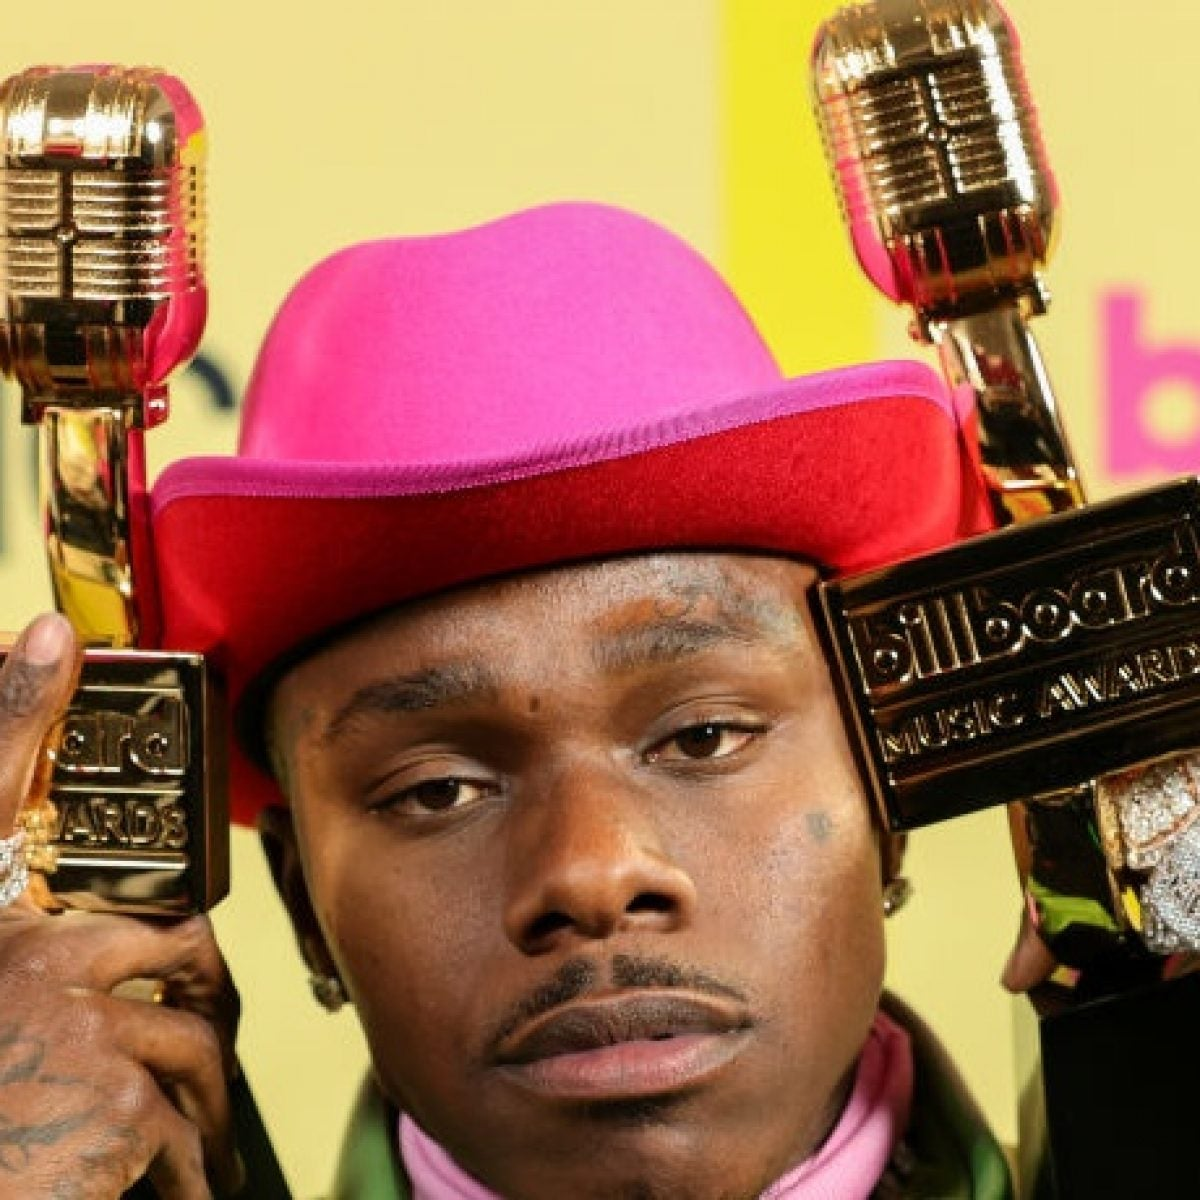 After Being Removed From Several Festival Lineups, DaBaby Now Wants 'Opportunity To Grow'